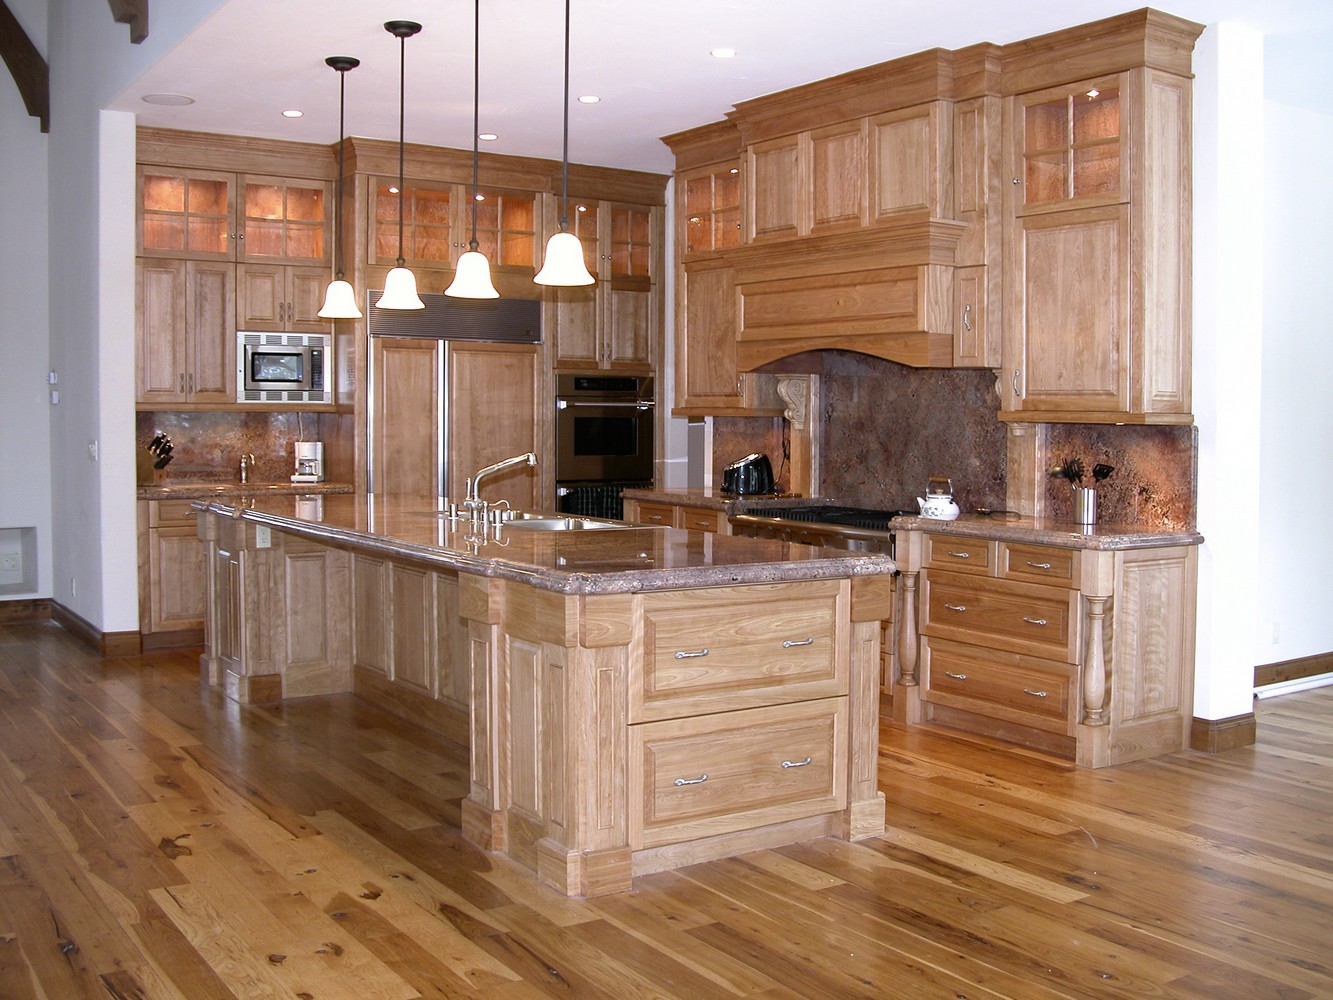 pictures of kitchen islands how to paint cabinets grey kitchens unique design cabinet co